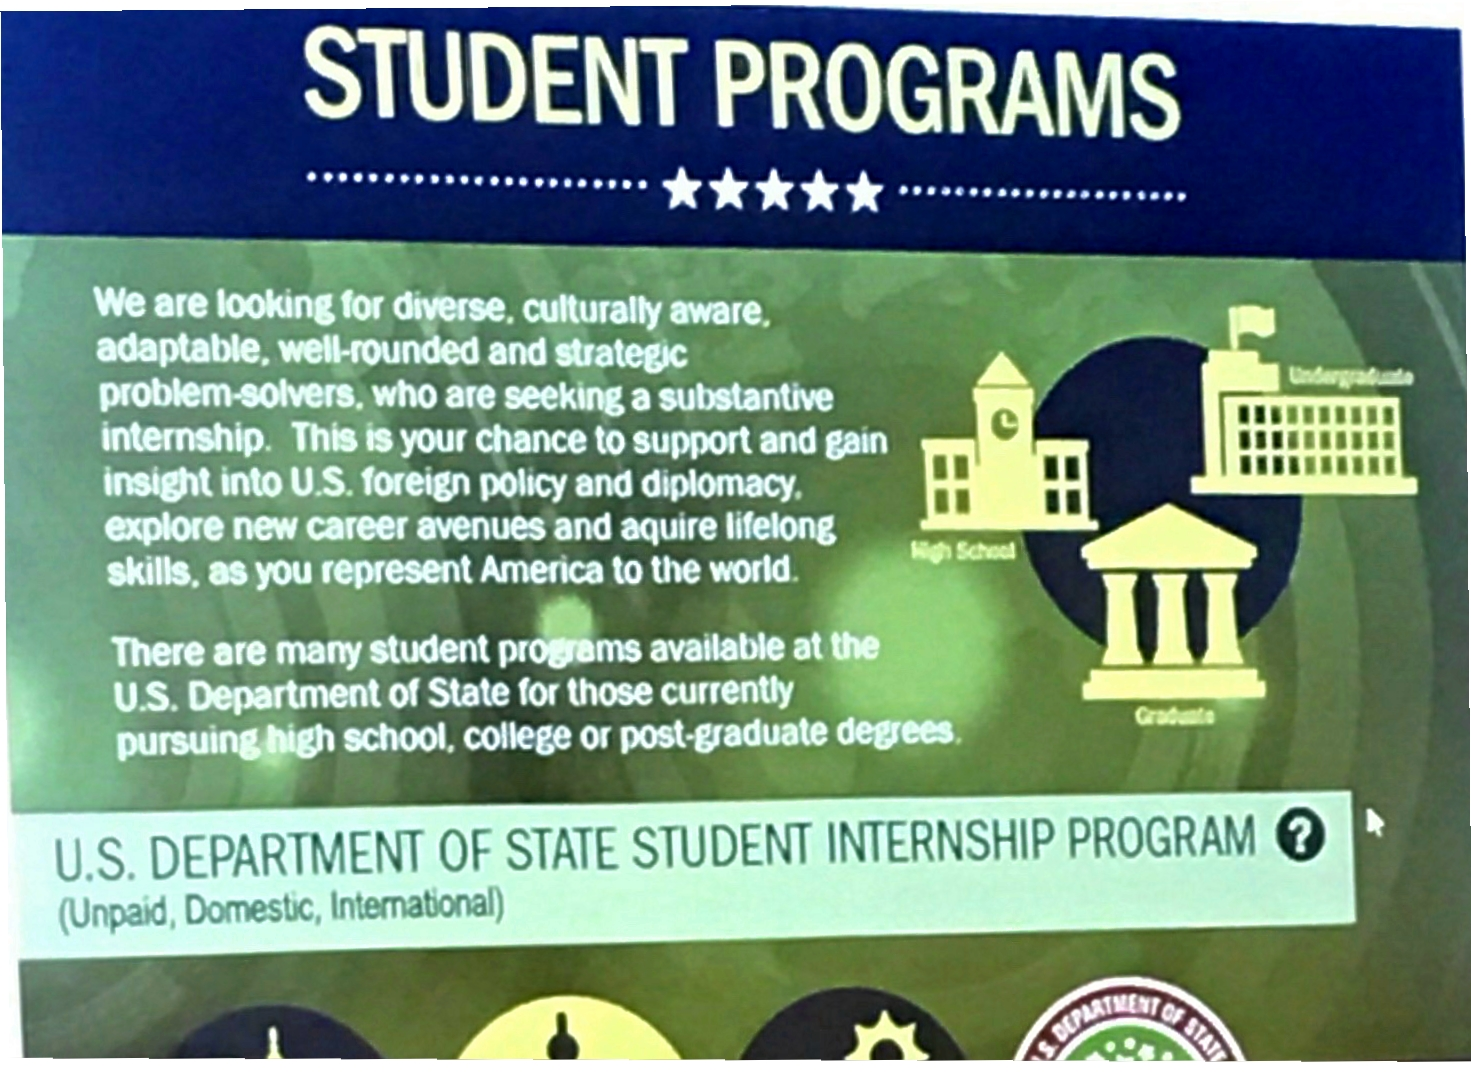 Dept of State Opportunities